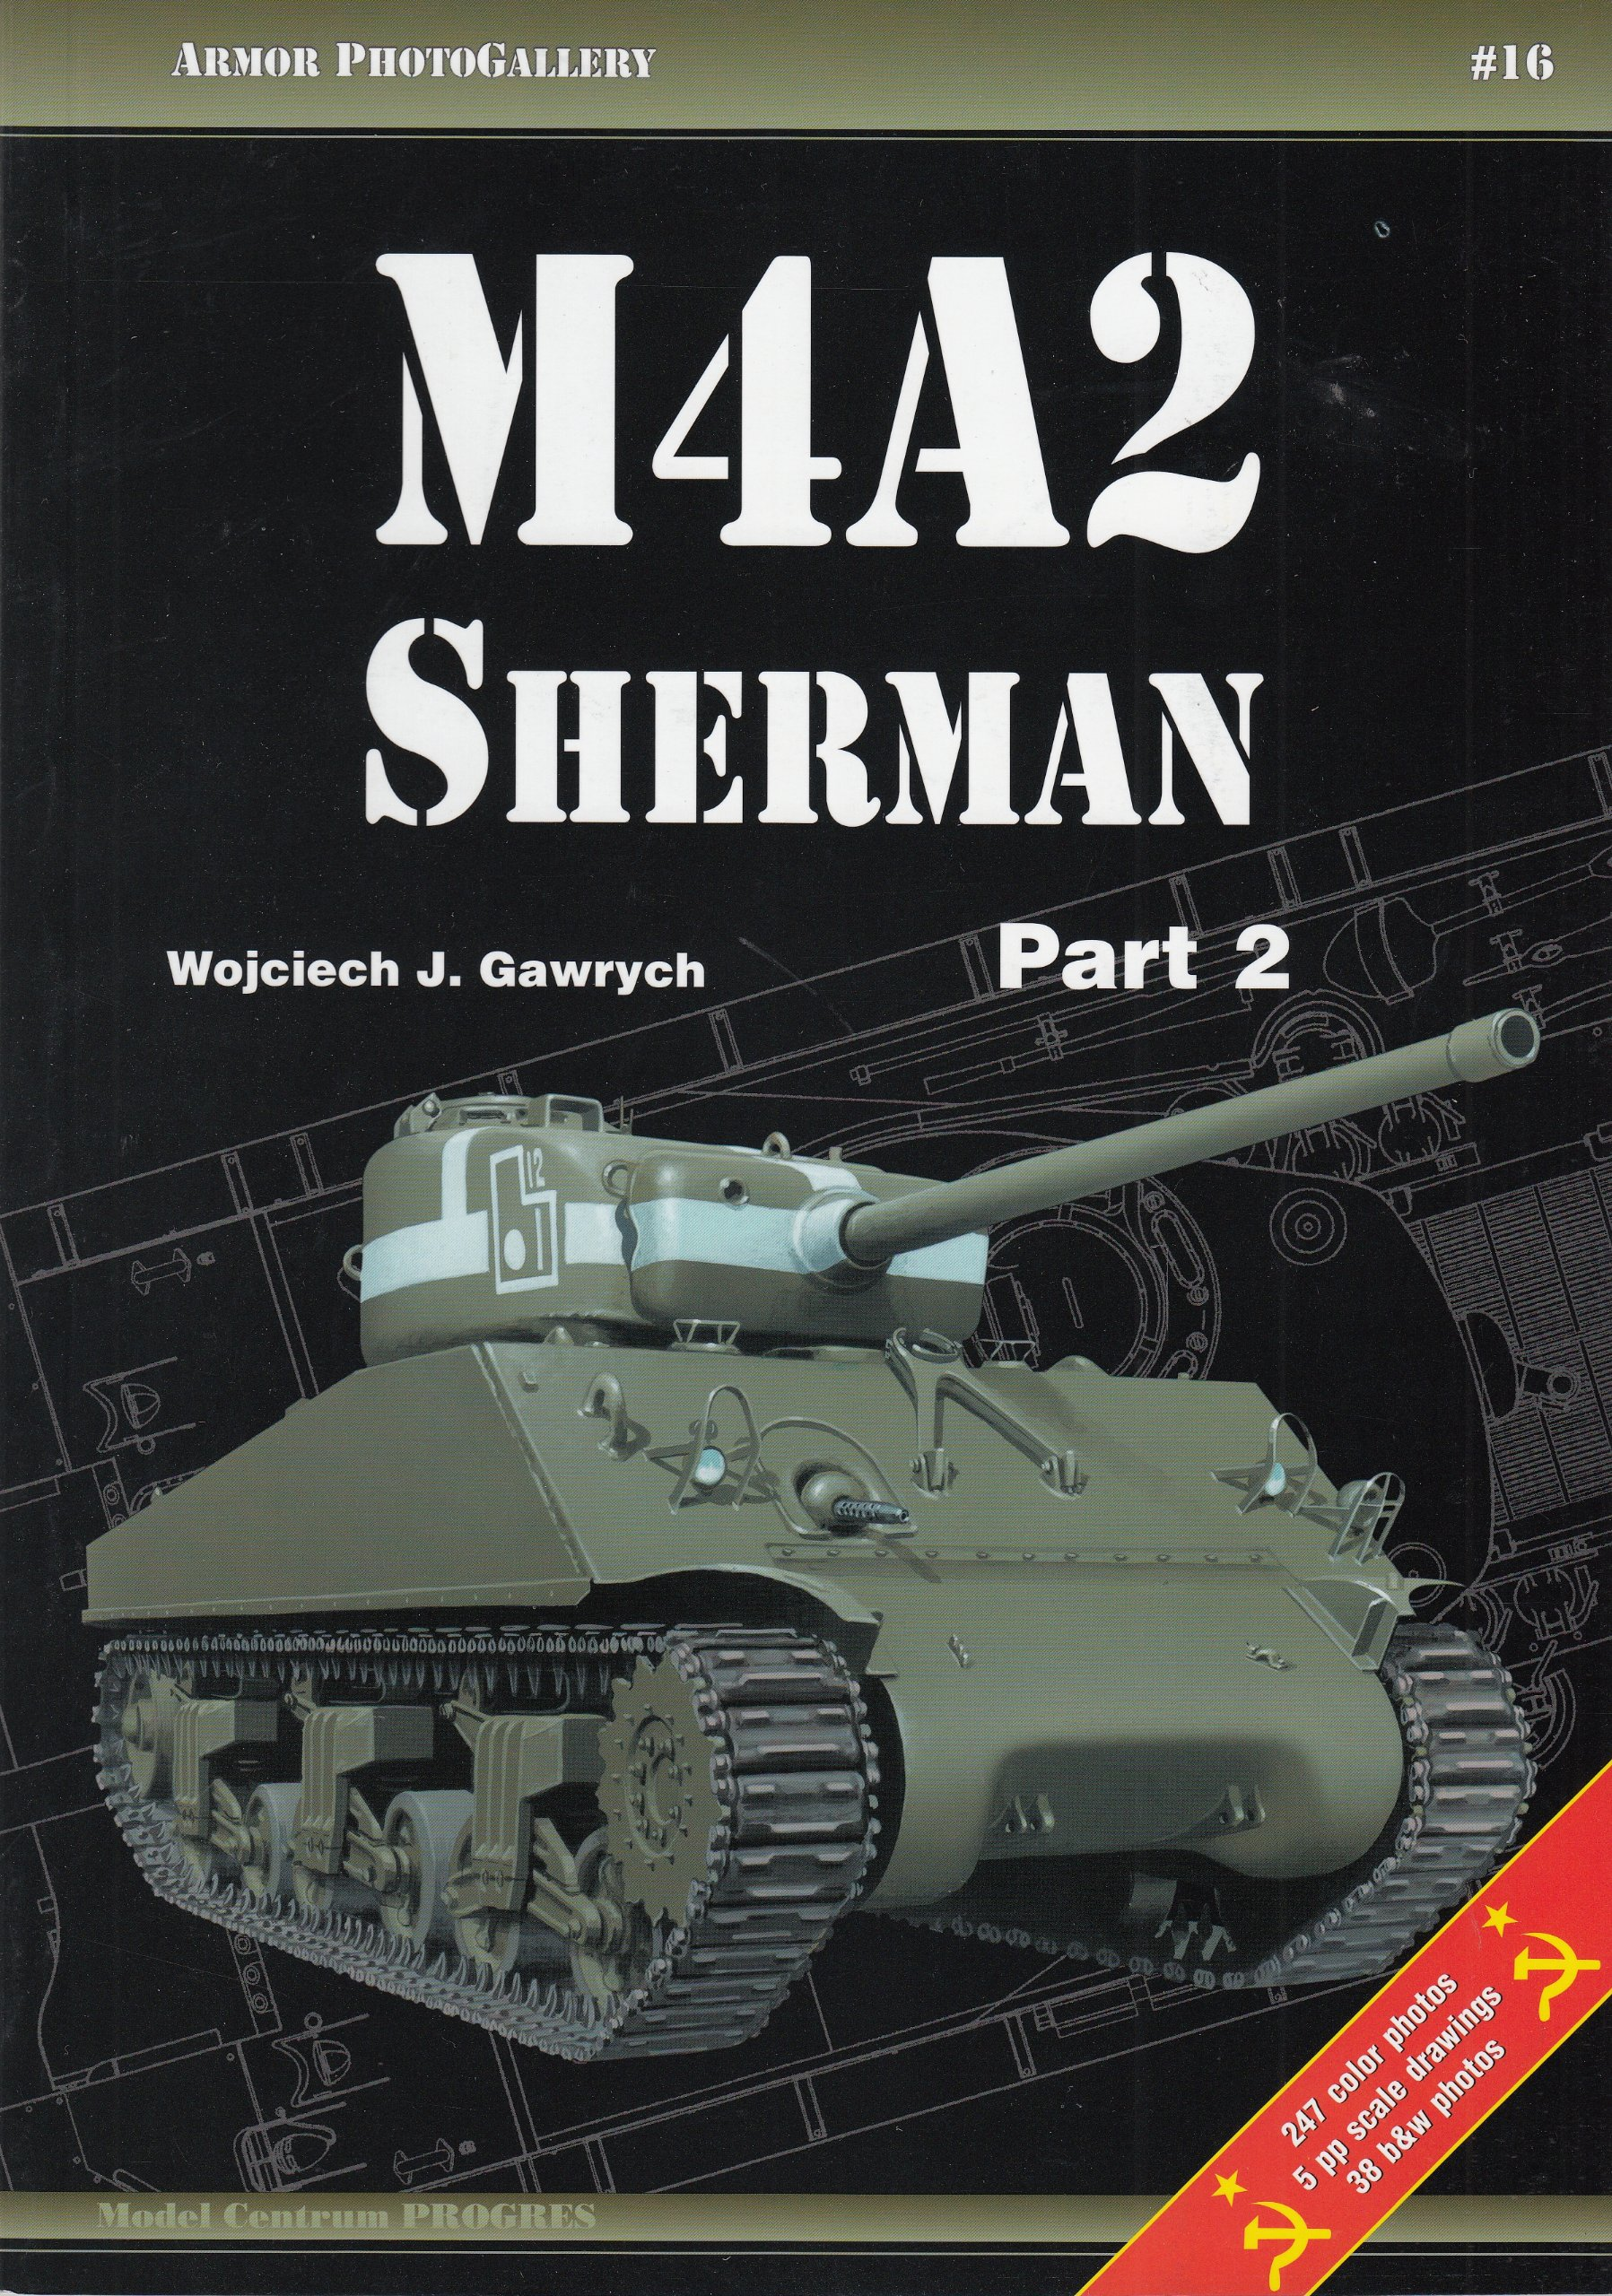 Download M4A2 Sherman Part 2 - Armour Photo Gallery No. 16 ebook